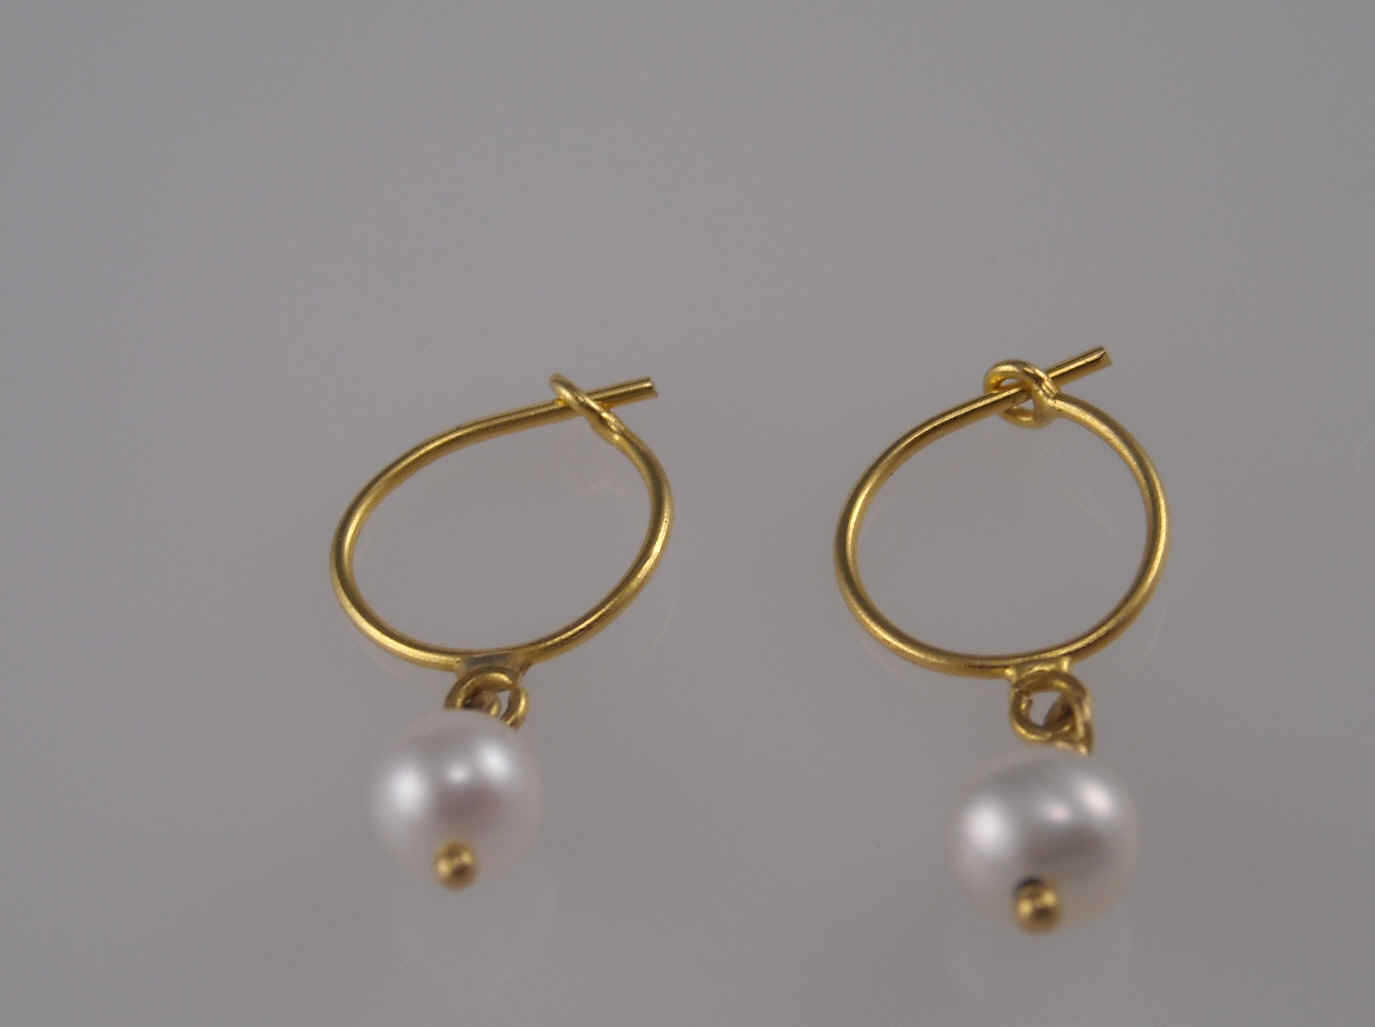 22k Gold Jewelry Beautiful Earrings And Pendants With Natural Gemstones